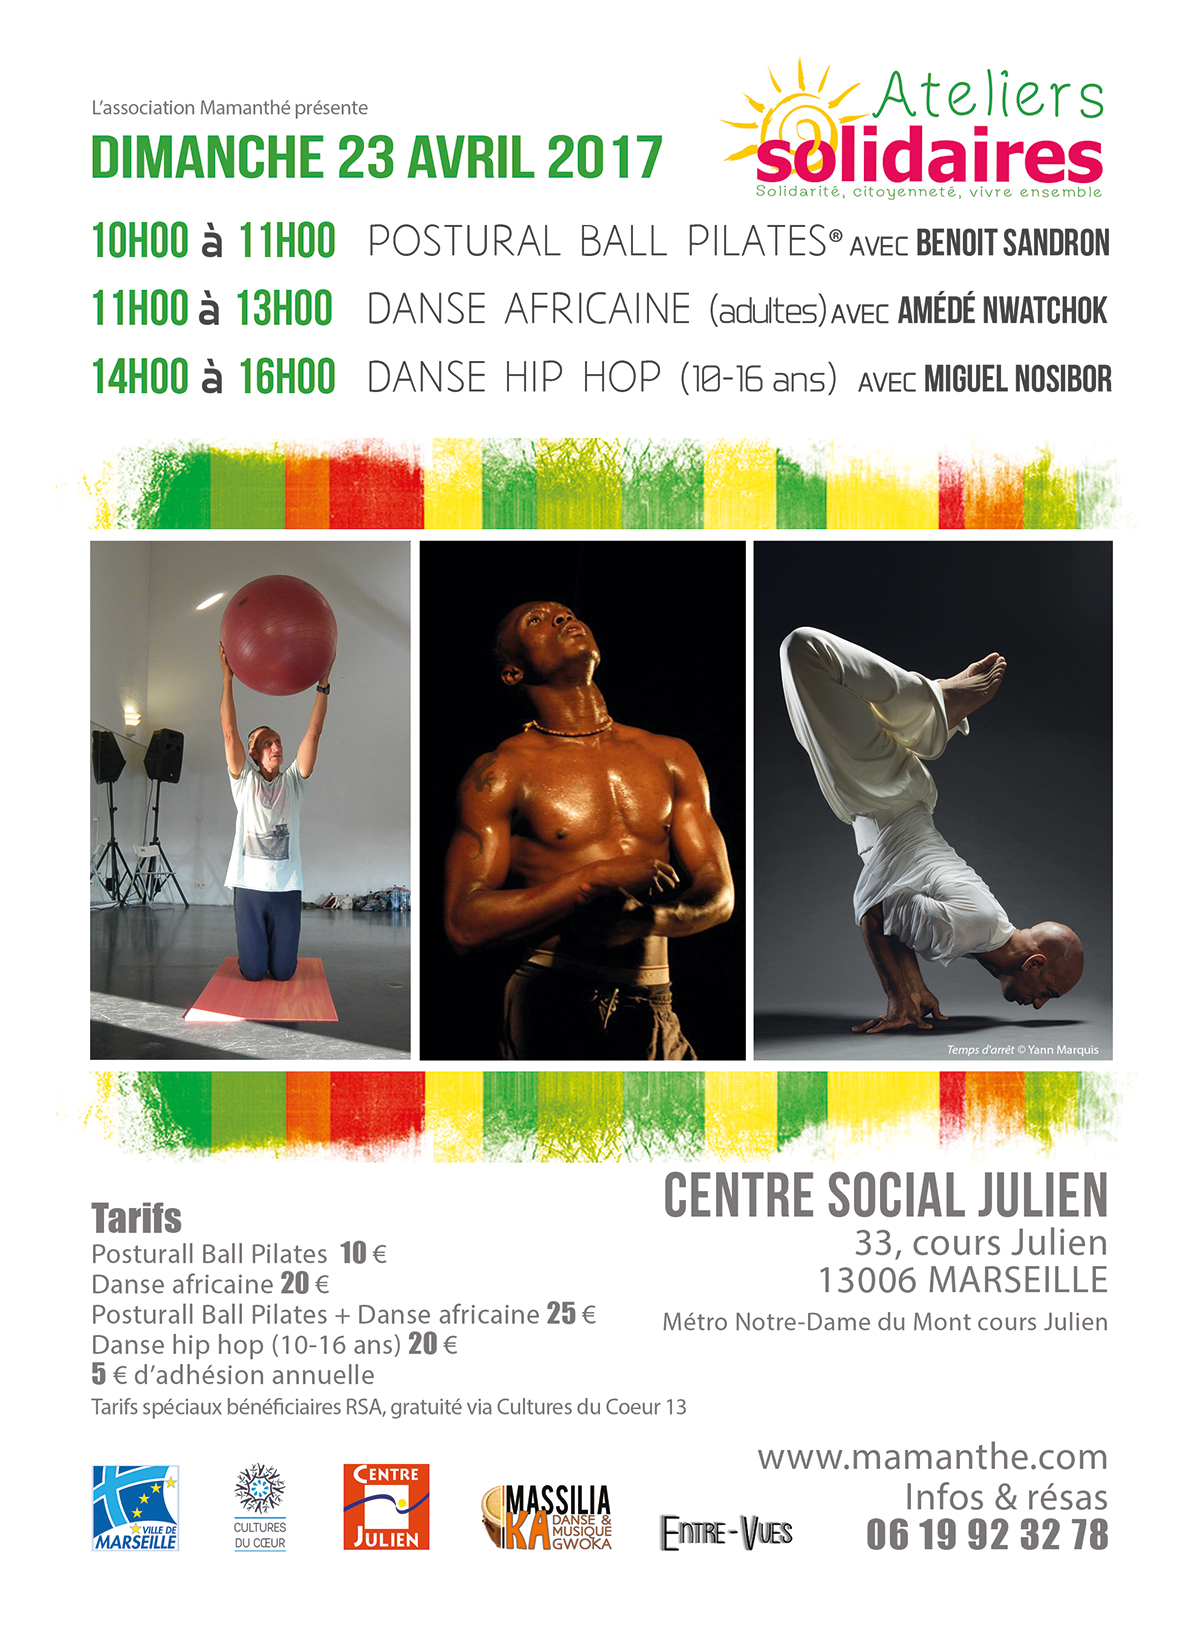 Dimanche 23 avril 2017 – Ateliers Solidaires – Marseille